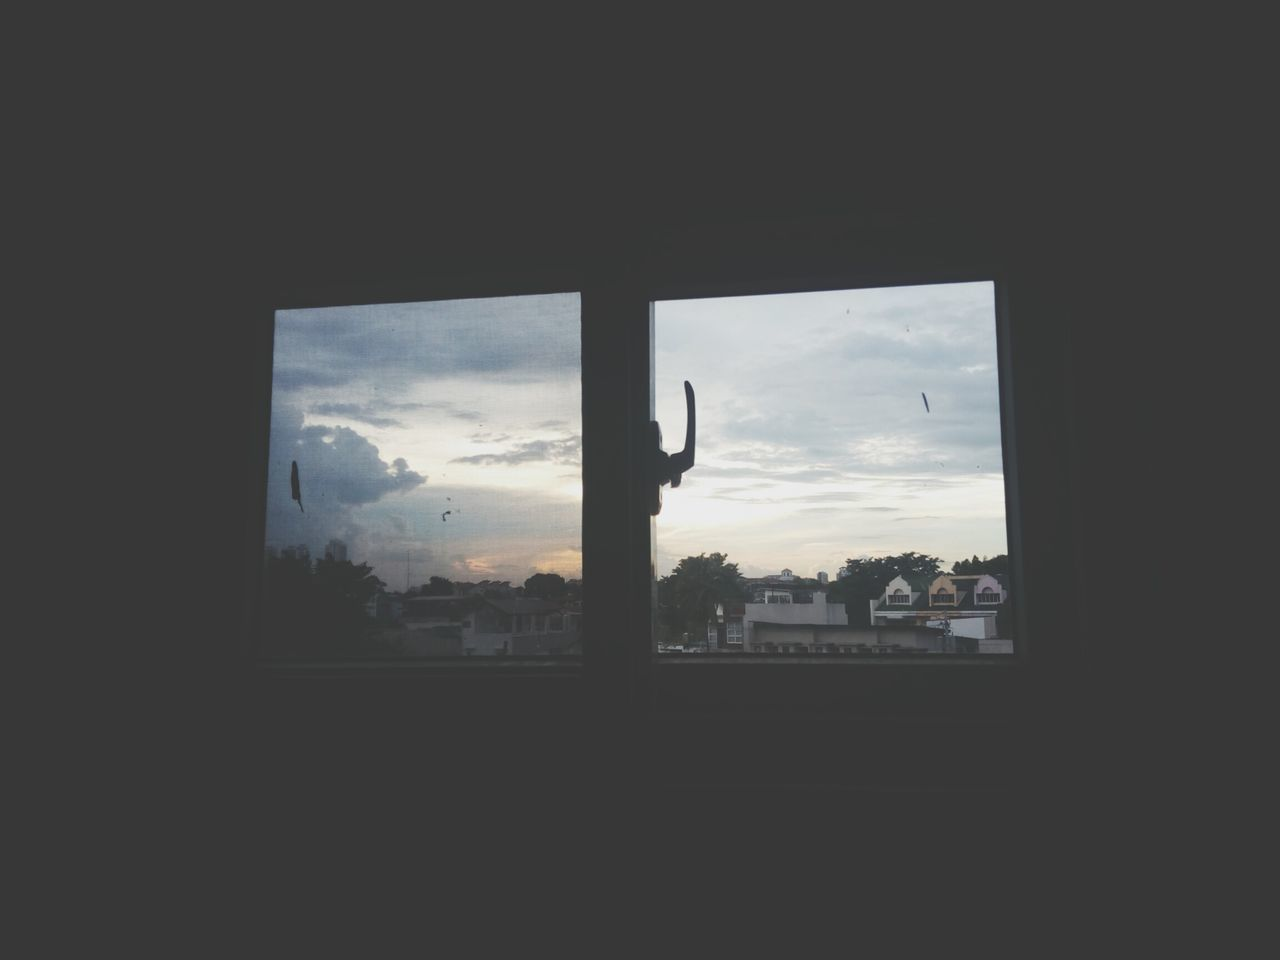 cloud - sky, sky, window, silhouette, nature, architecture, built structure, mountain, building exterior, tree, sunset, indoors, no people, landscape, beauty in nature, scenics, day, cityscape, city